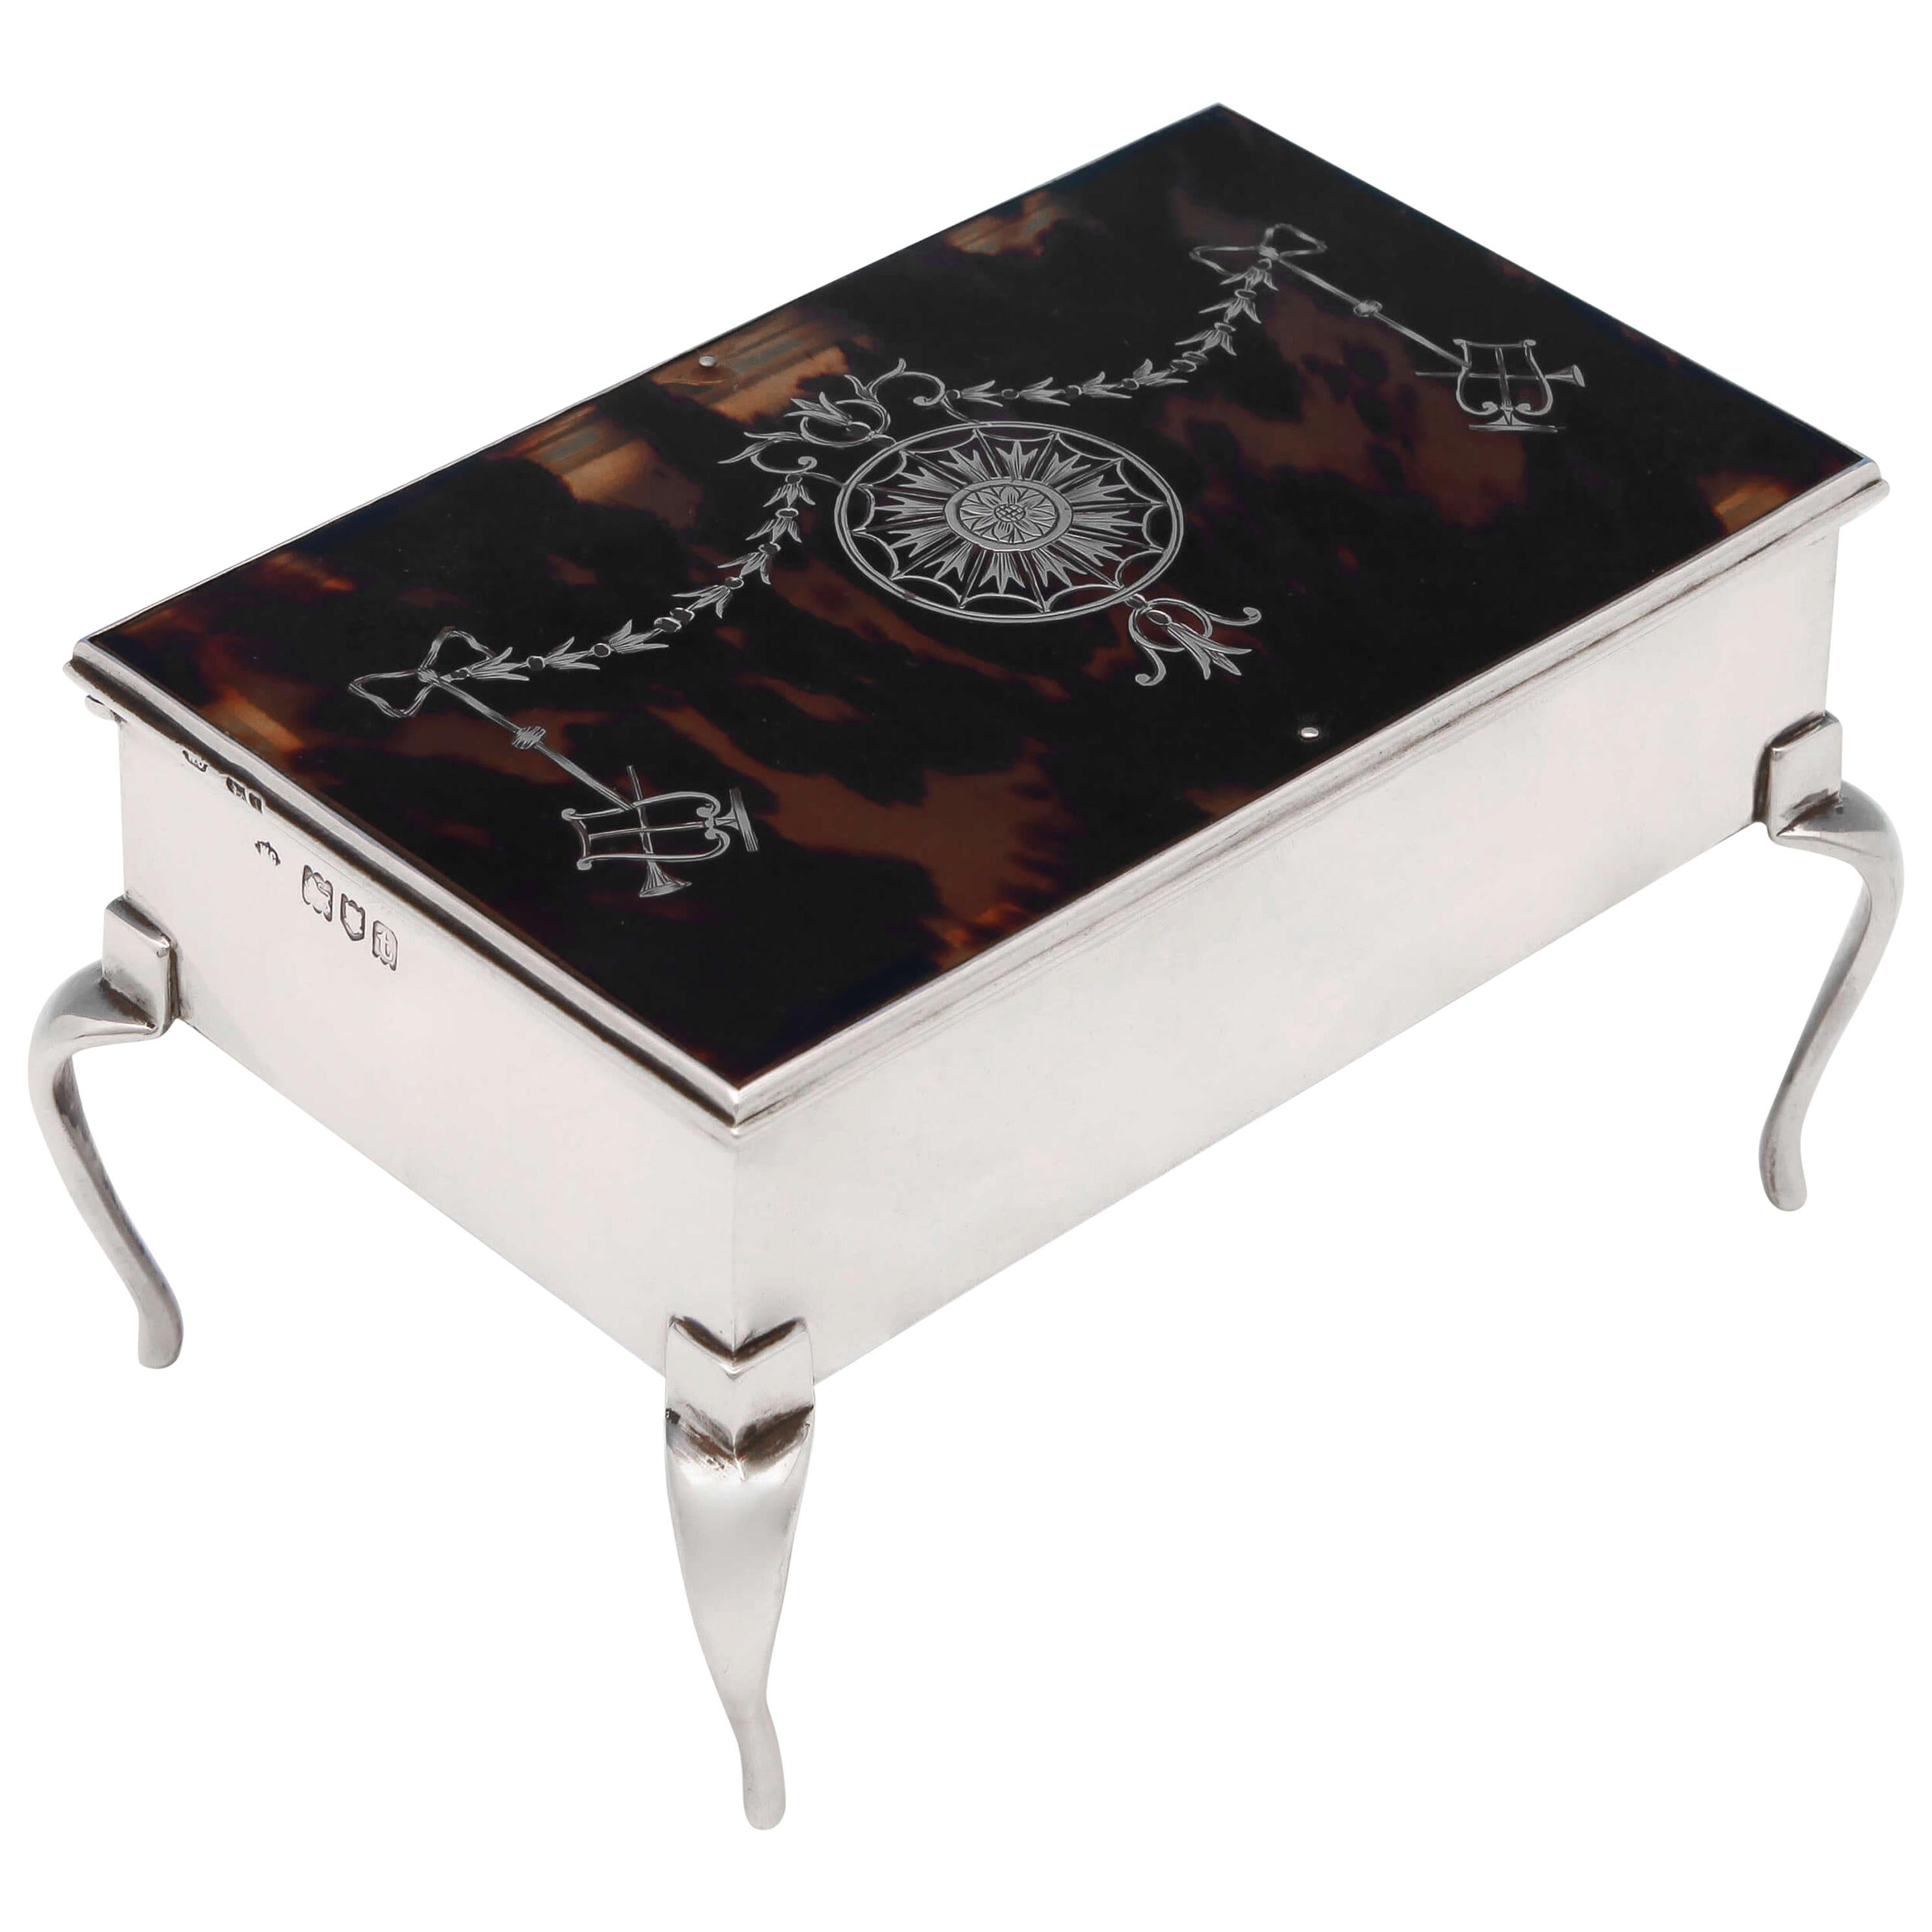 Antique Tortoiseshell and Sterling Silver Jewelry Box by William Comyns, 1912